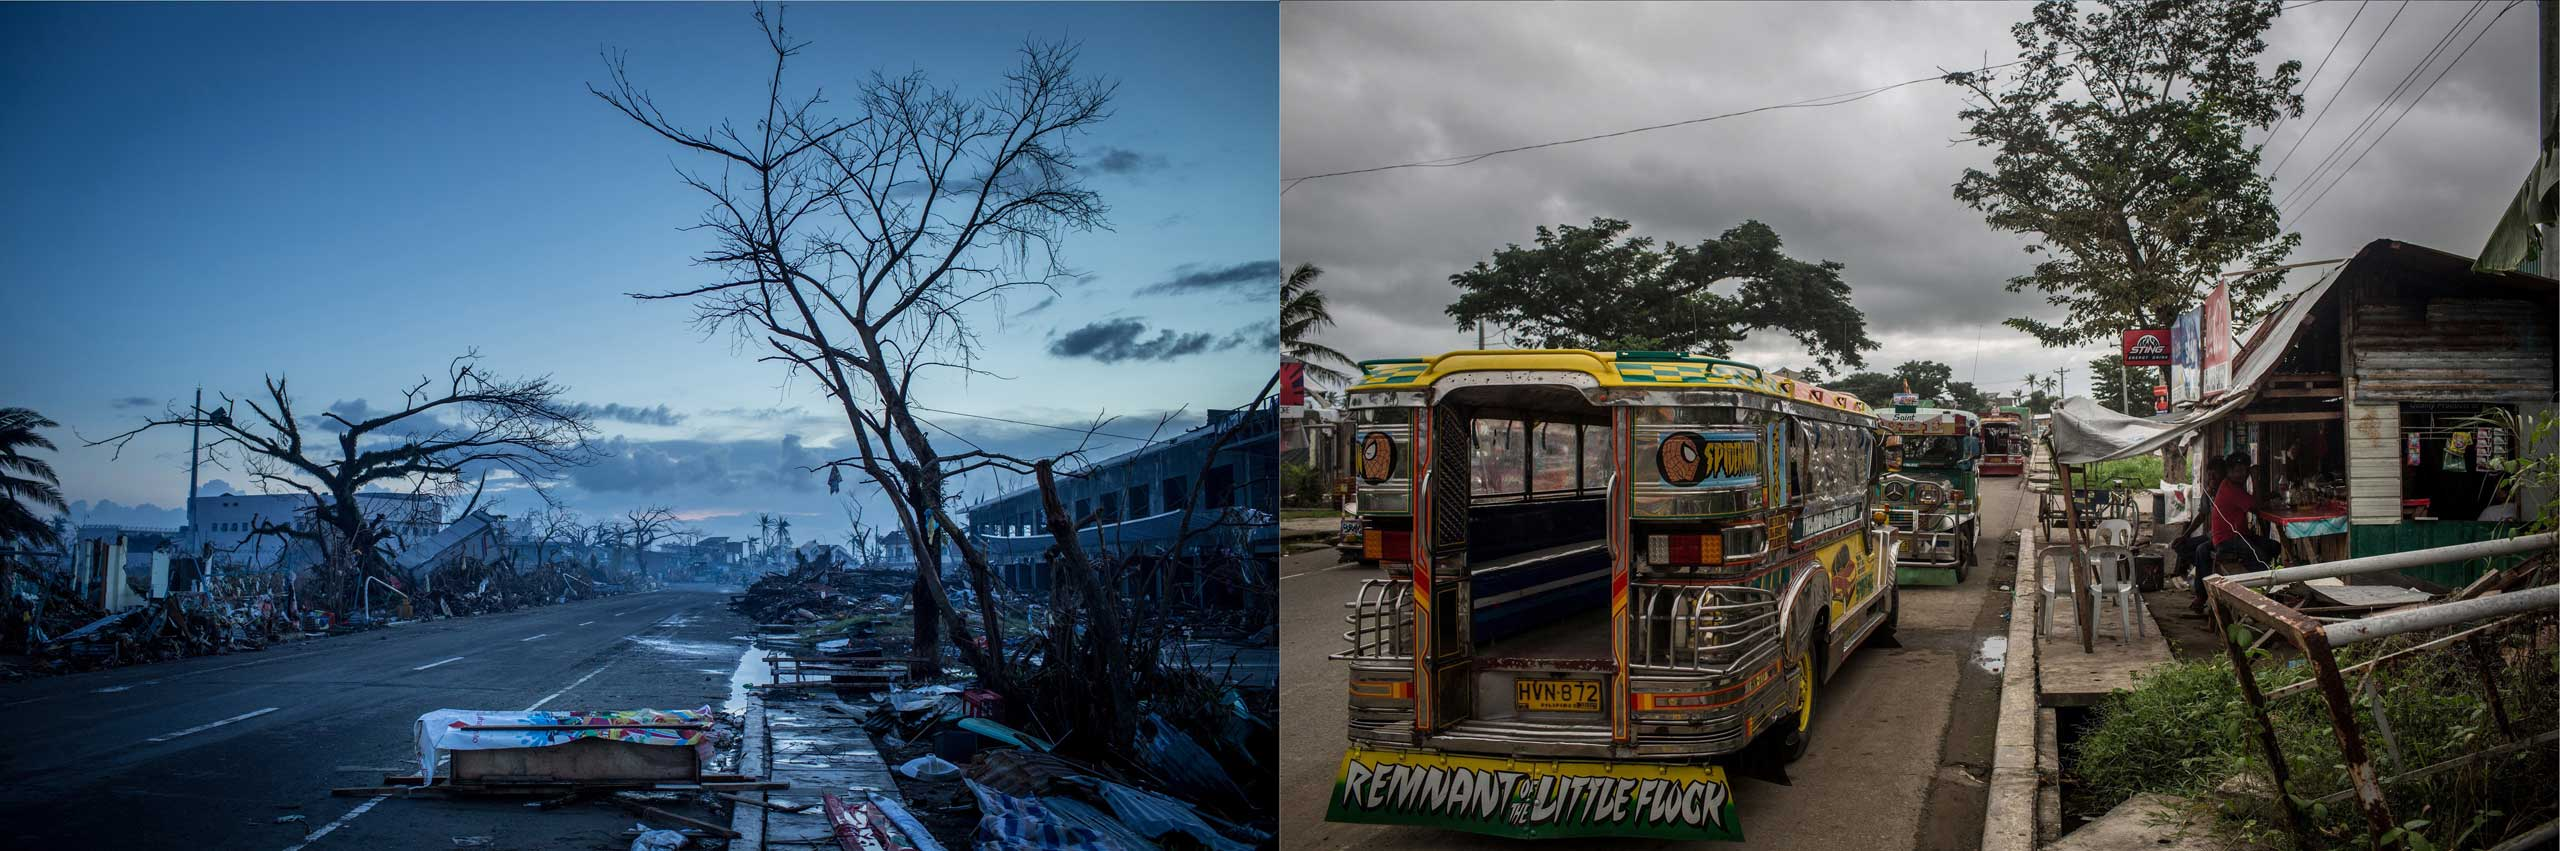 Before: A homemade casket is seen on the side of the road as curfew approaches on Nov. 14, 2013 in Leyte, Philippines.After: View along the road from the airport one year after Typhoon Haiyan on Nov. 3, 2014.